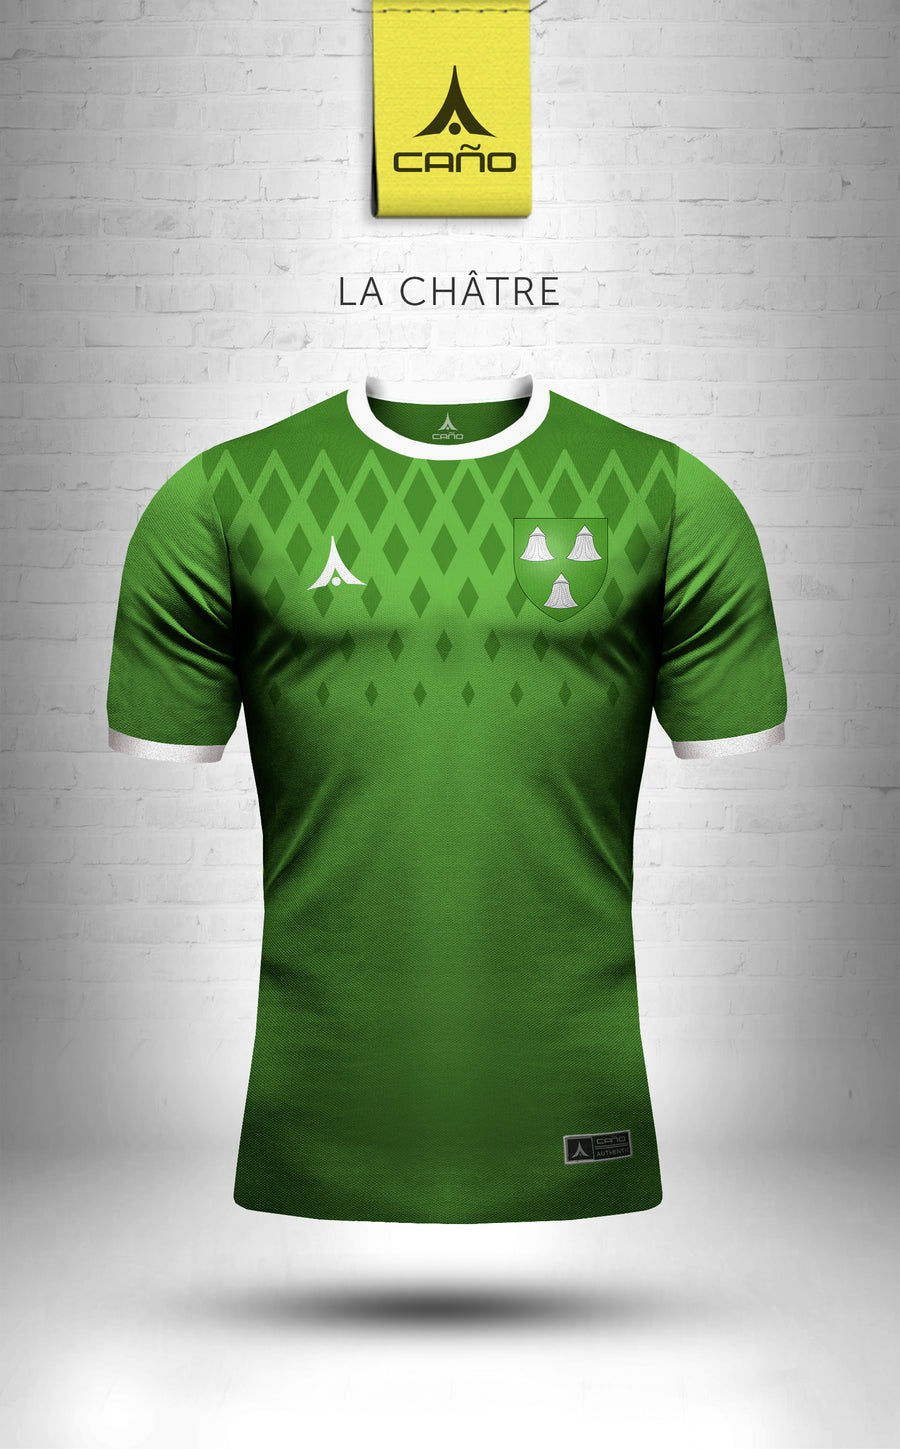 La Chatre in green